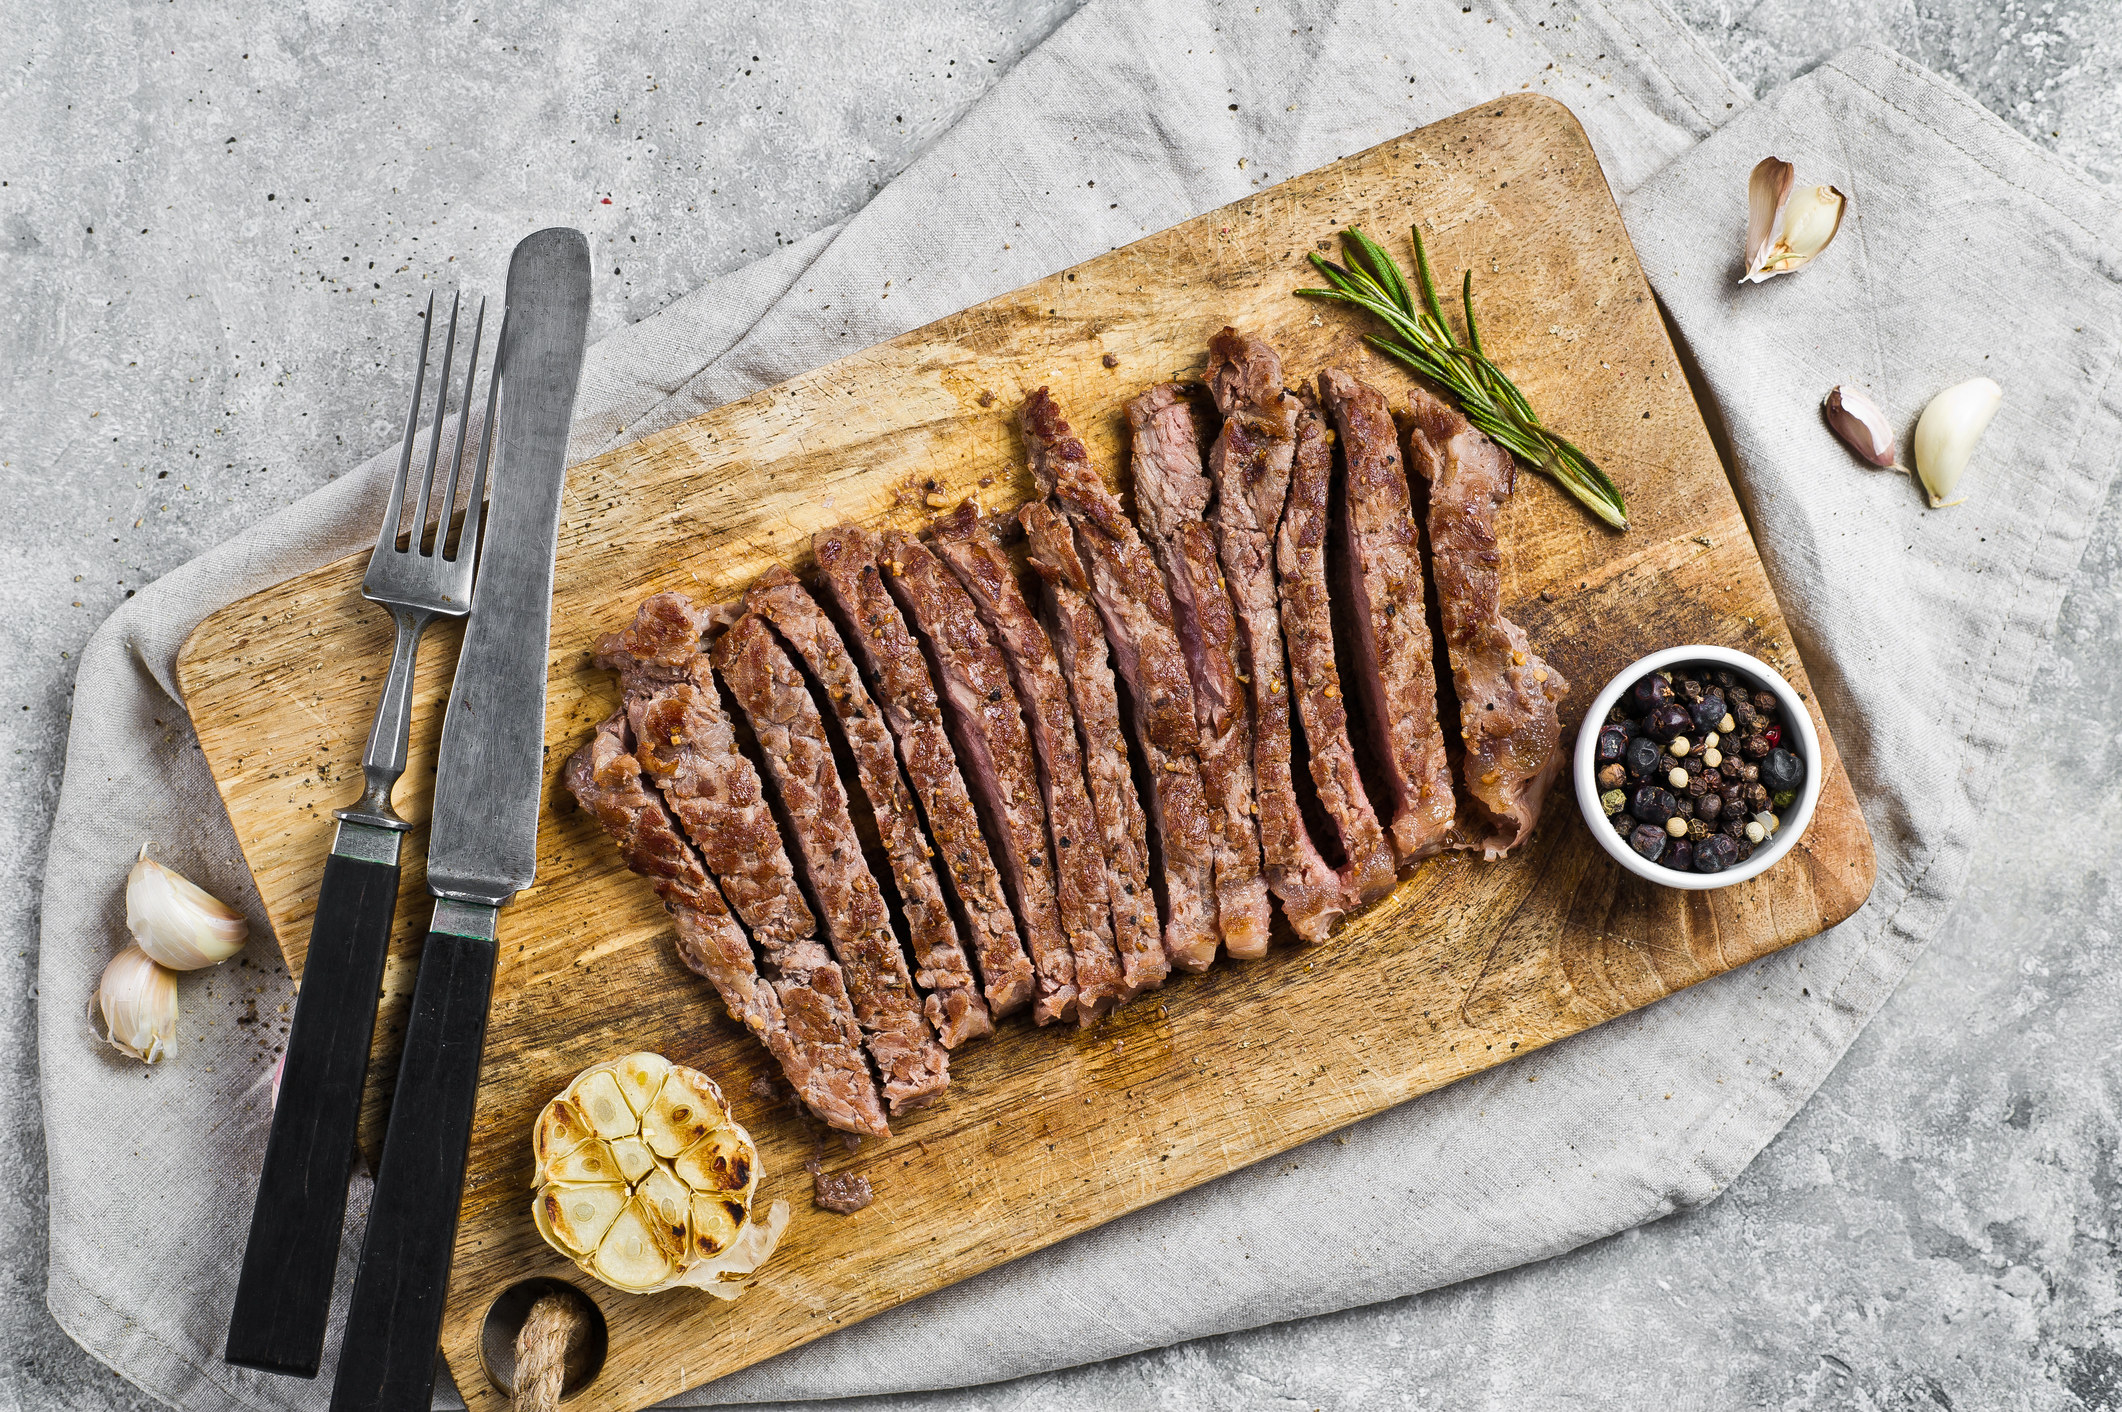 A cutting board topped with sliced steak.